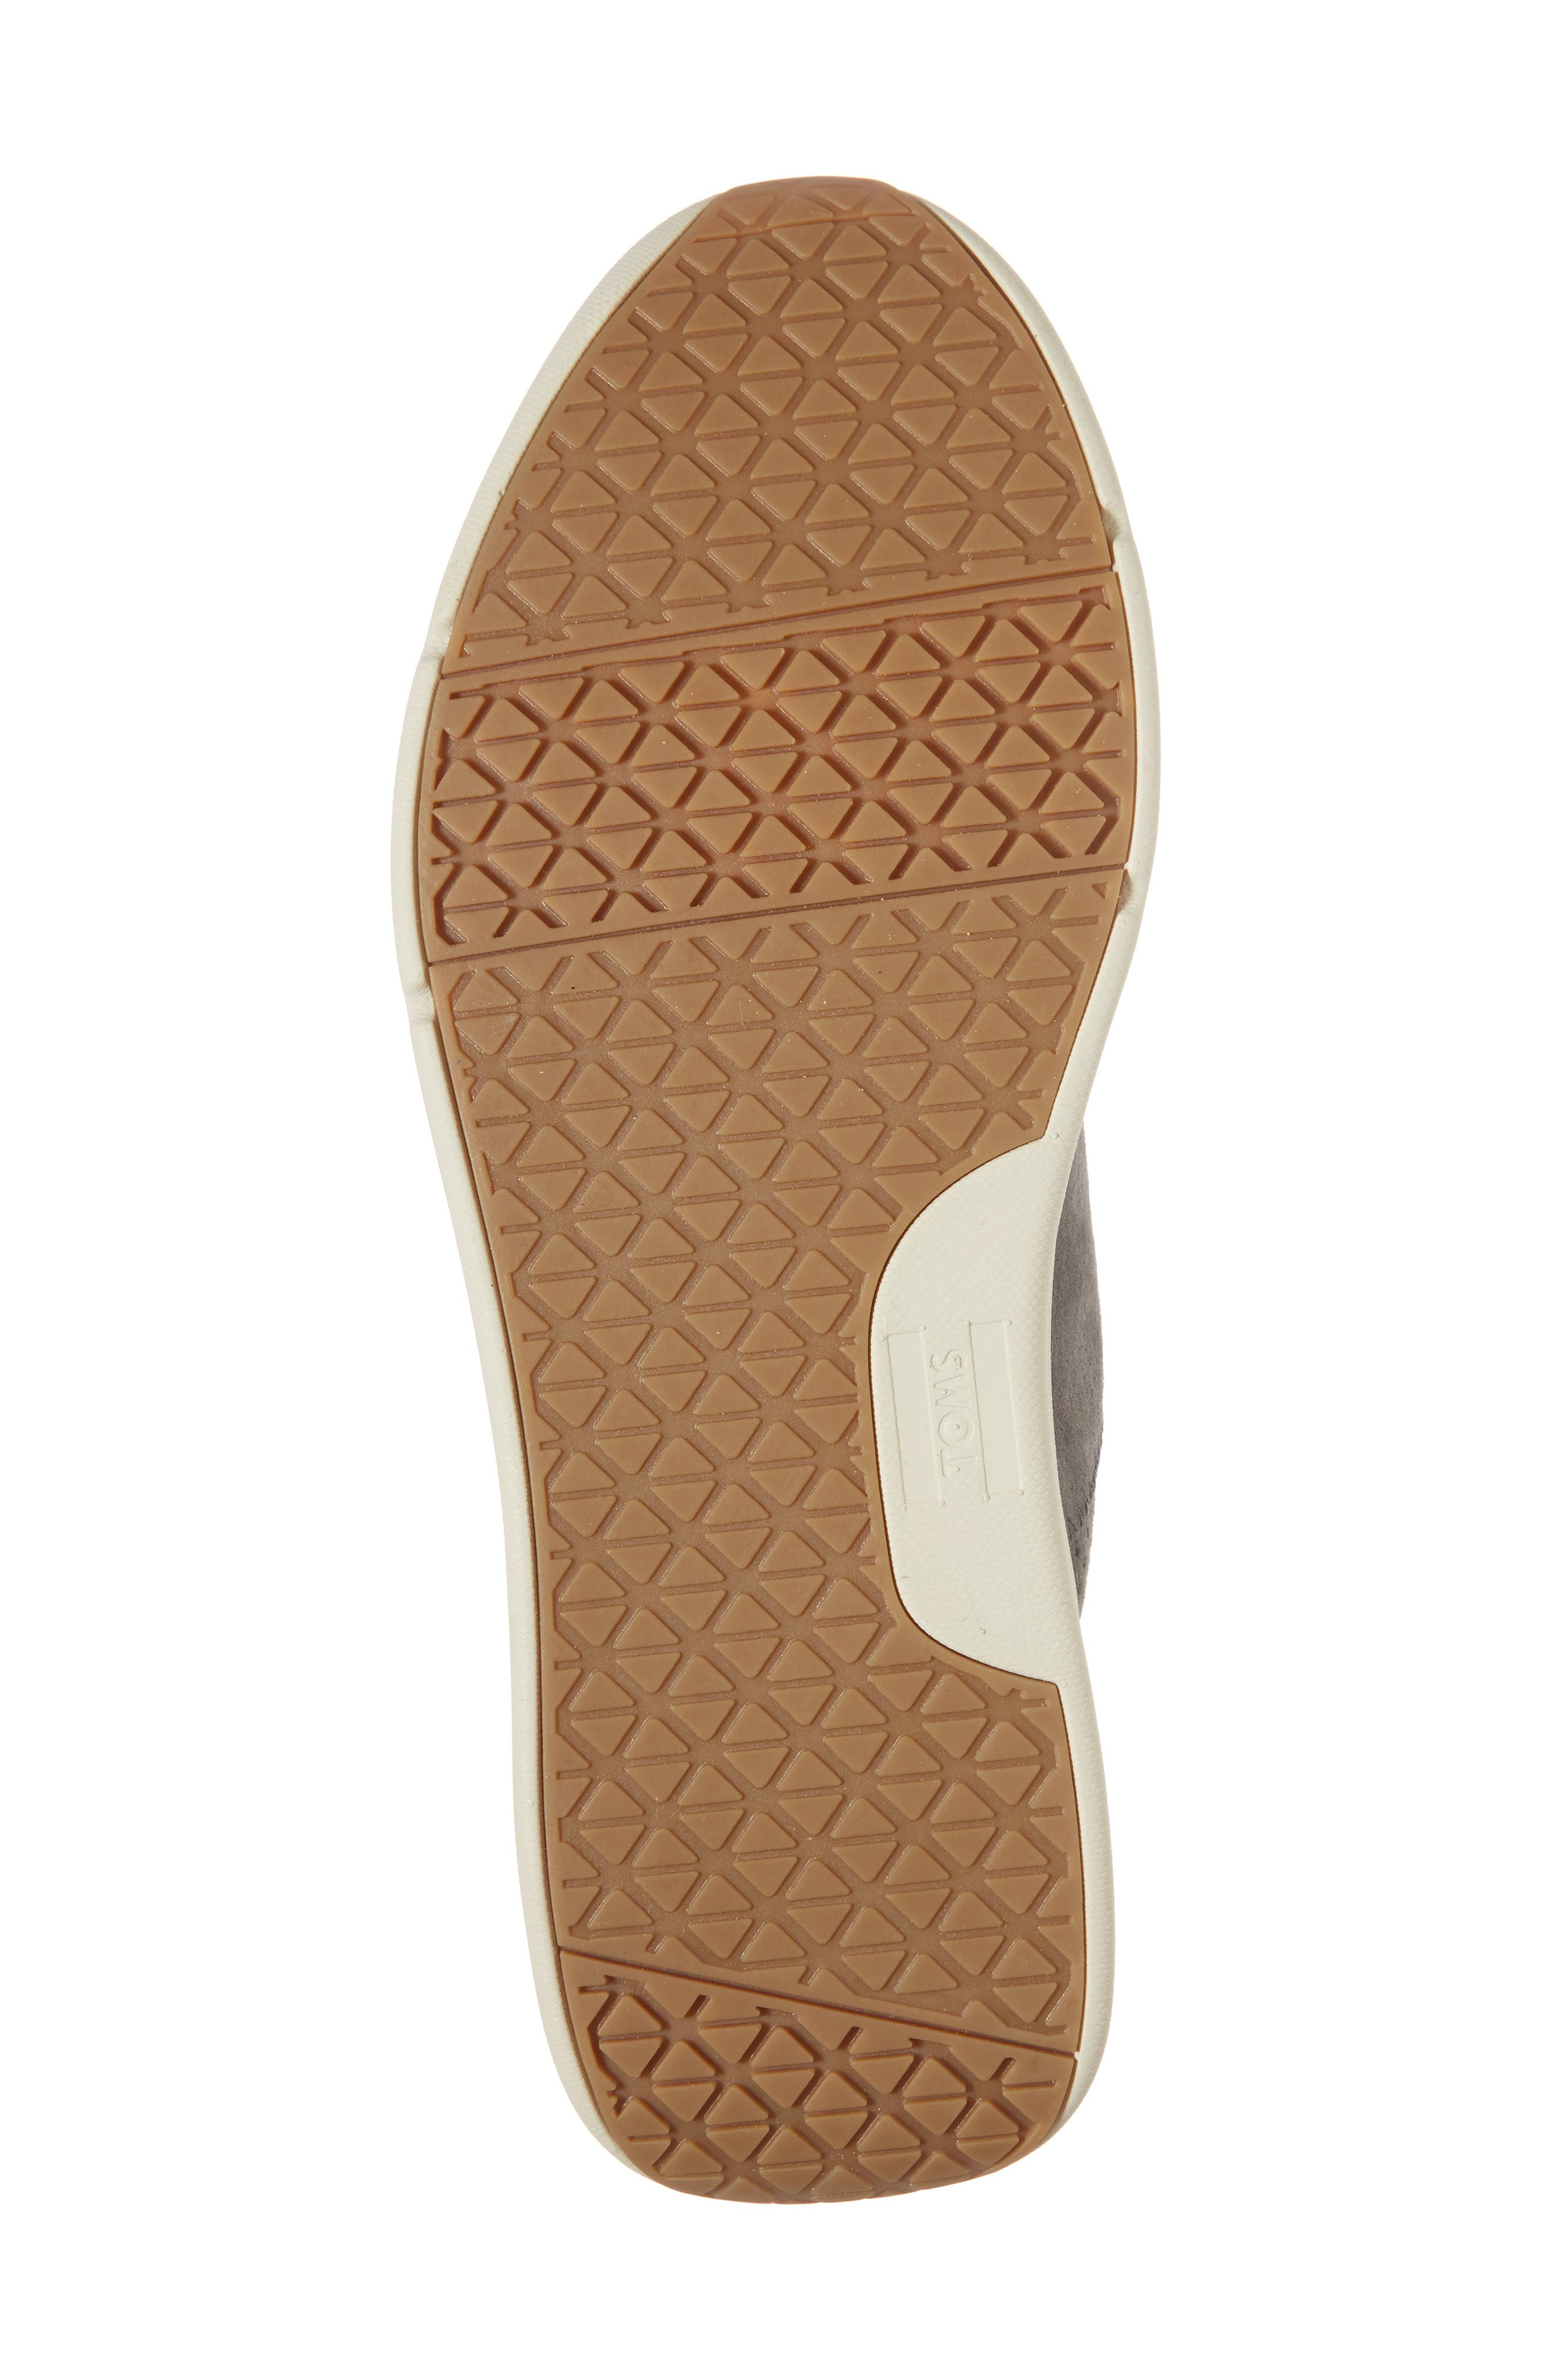 Cabrillo Perforated Low Top Sneaker,                             Alternate thumbnail 6, color,                             021